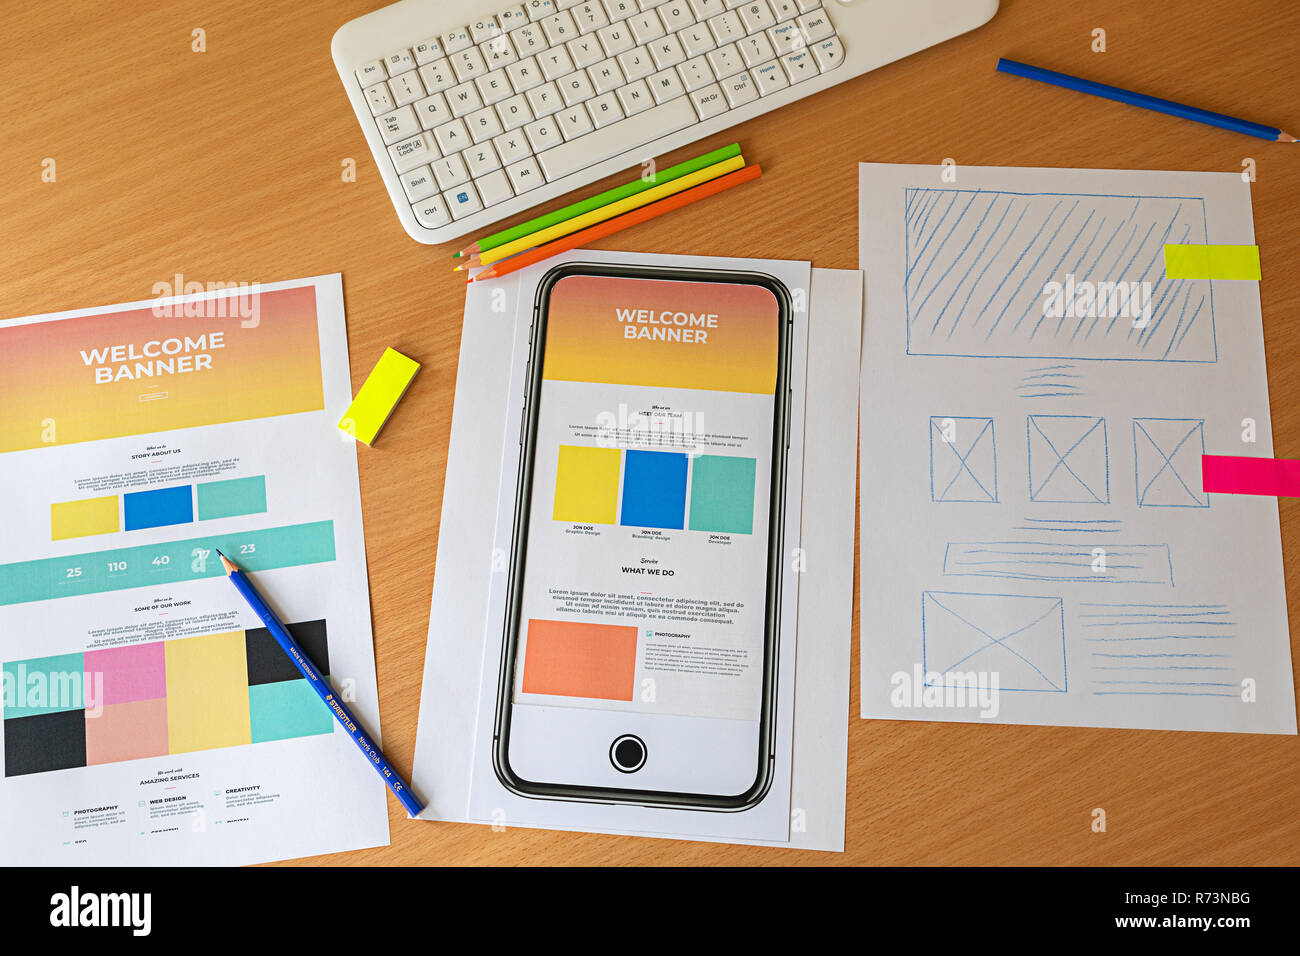 Creative sketch planning application process development prototype wireframe for web mobile phone. Landing page for new website. User experience conce - Stock Image